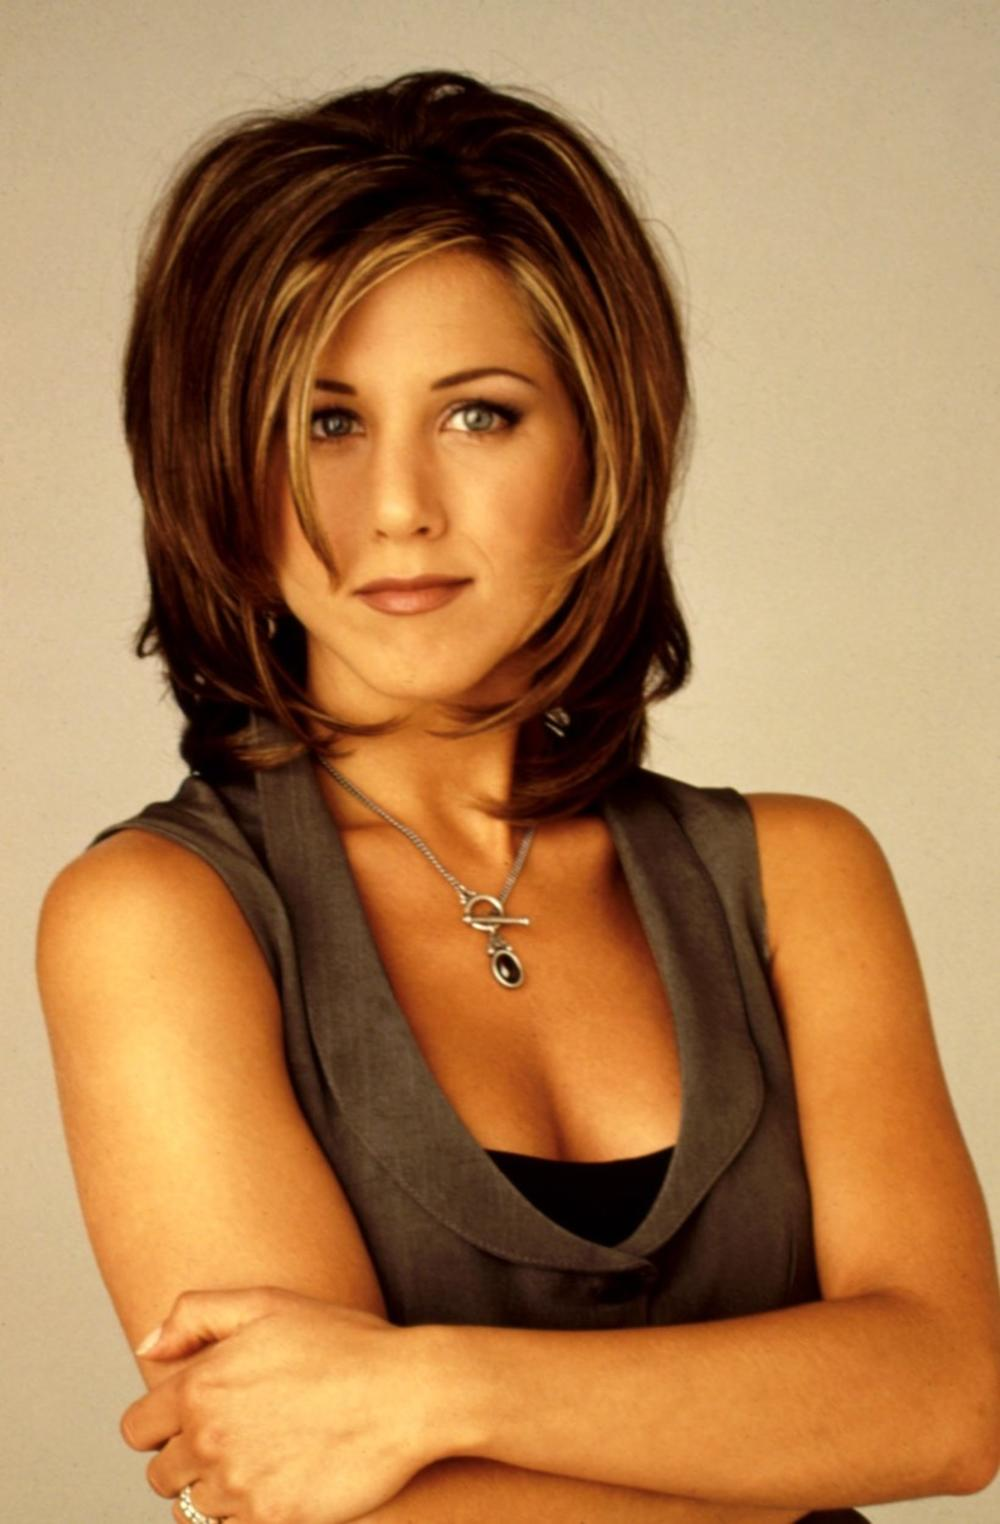 Dženifer Aniston